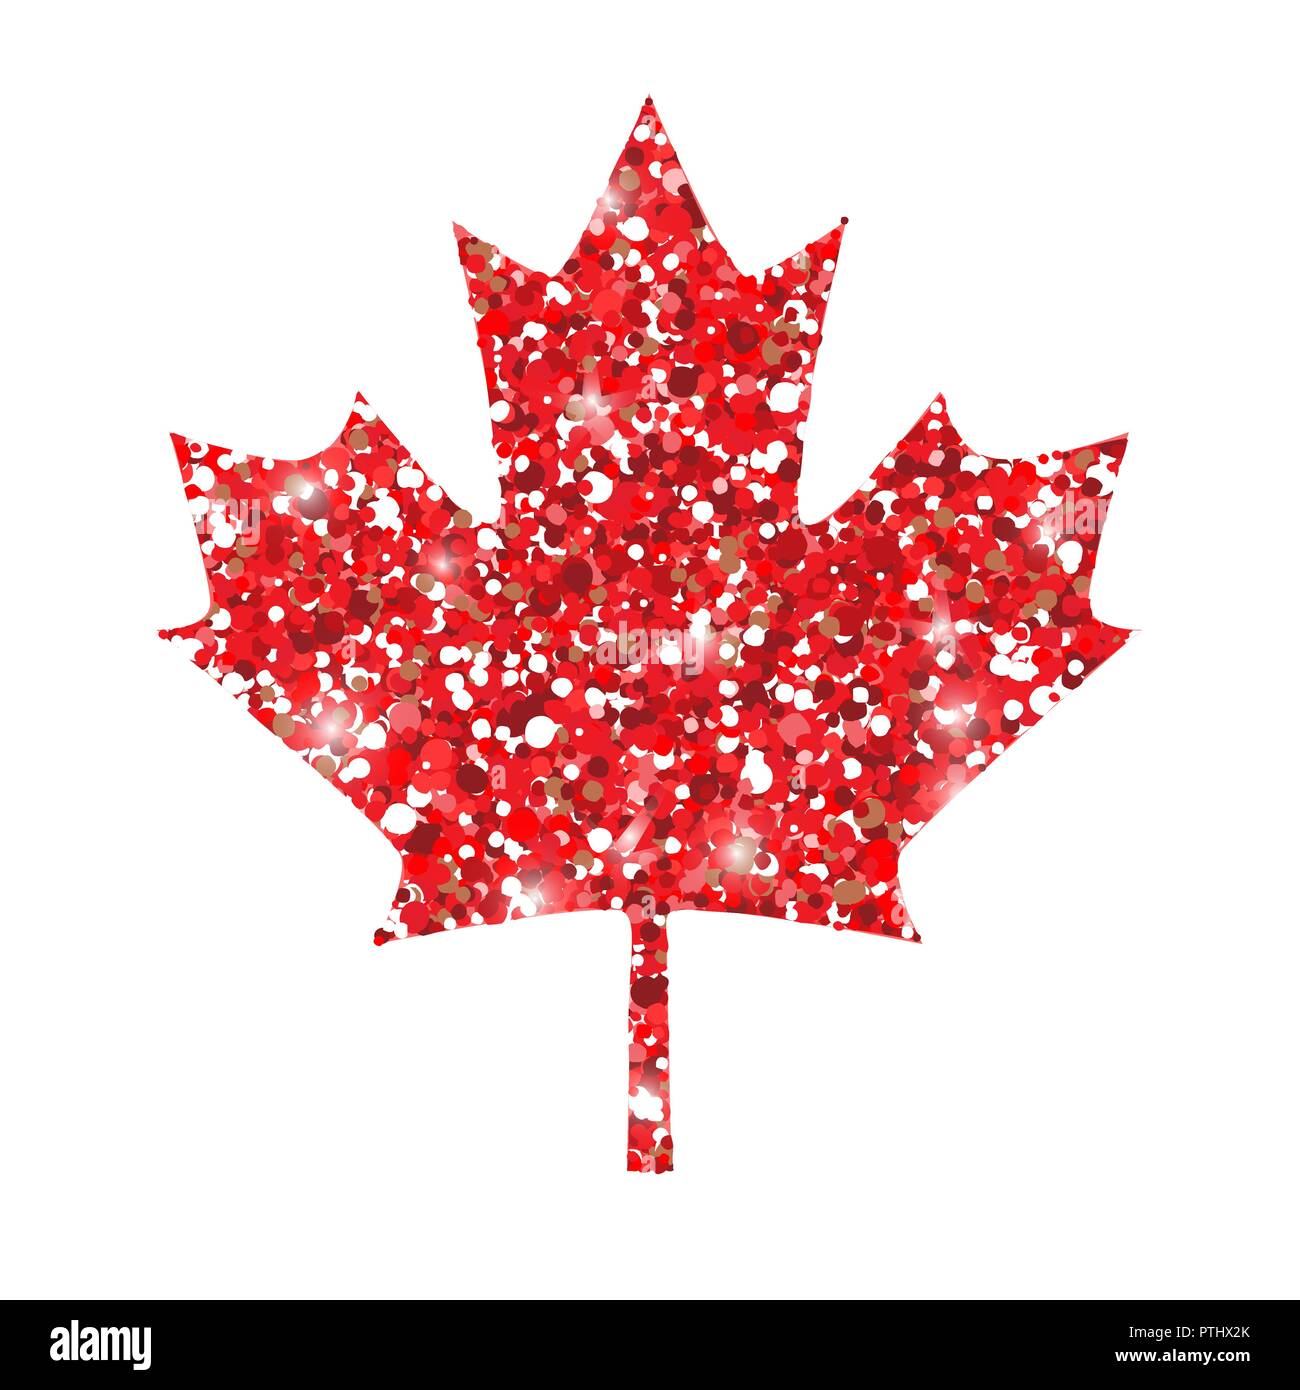 Happy canada day vector greeting card with red maple leaf glitter happy canada day vector greeting card with red maple leaf glitter background design for card posters canada day celebration m4hsunfo